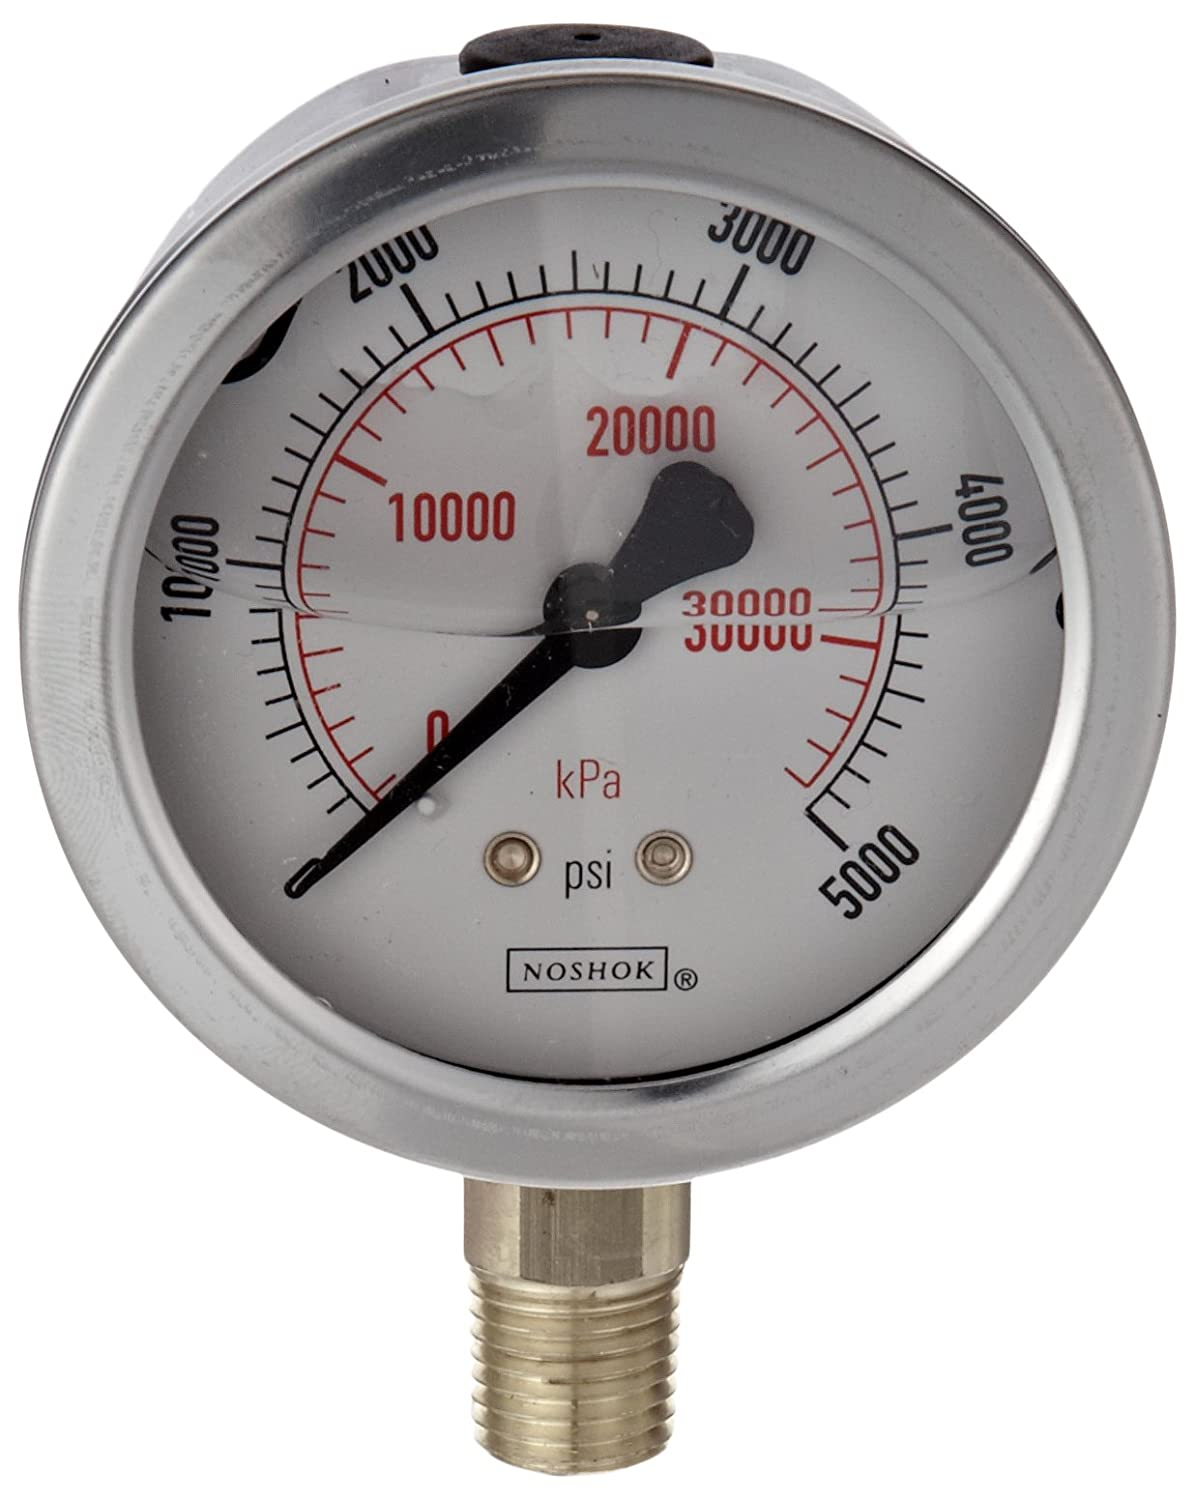 NOSHOK 900 Series Stainless Steel Liquid Filled Dual Scale Dial Indicating Pressure Gauge with Back Mount, 2-1/2